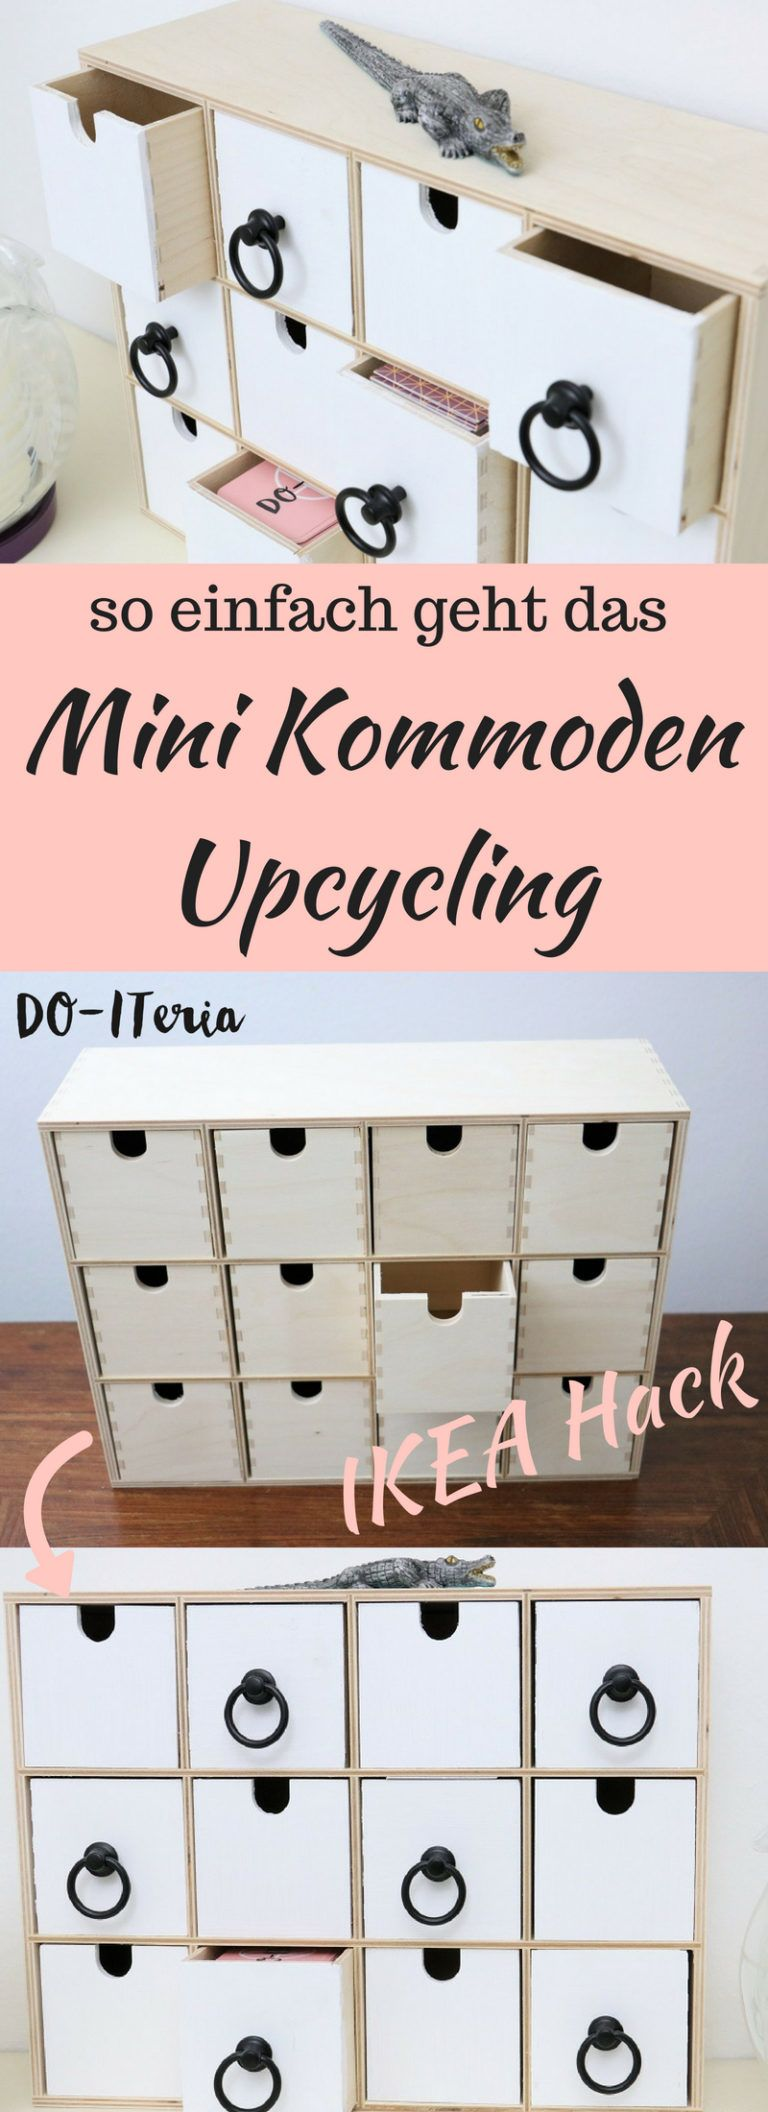 Ikea Hack: schickes Upcycling einer Mini Kommode #palletbedroomfurniture